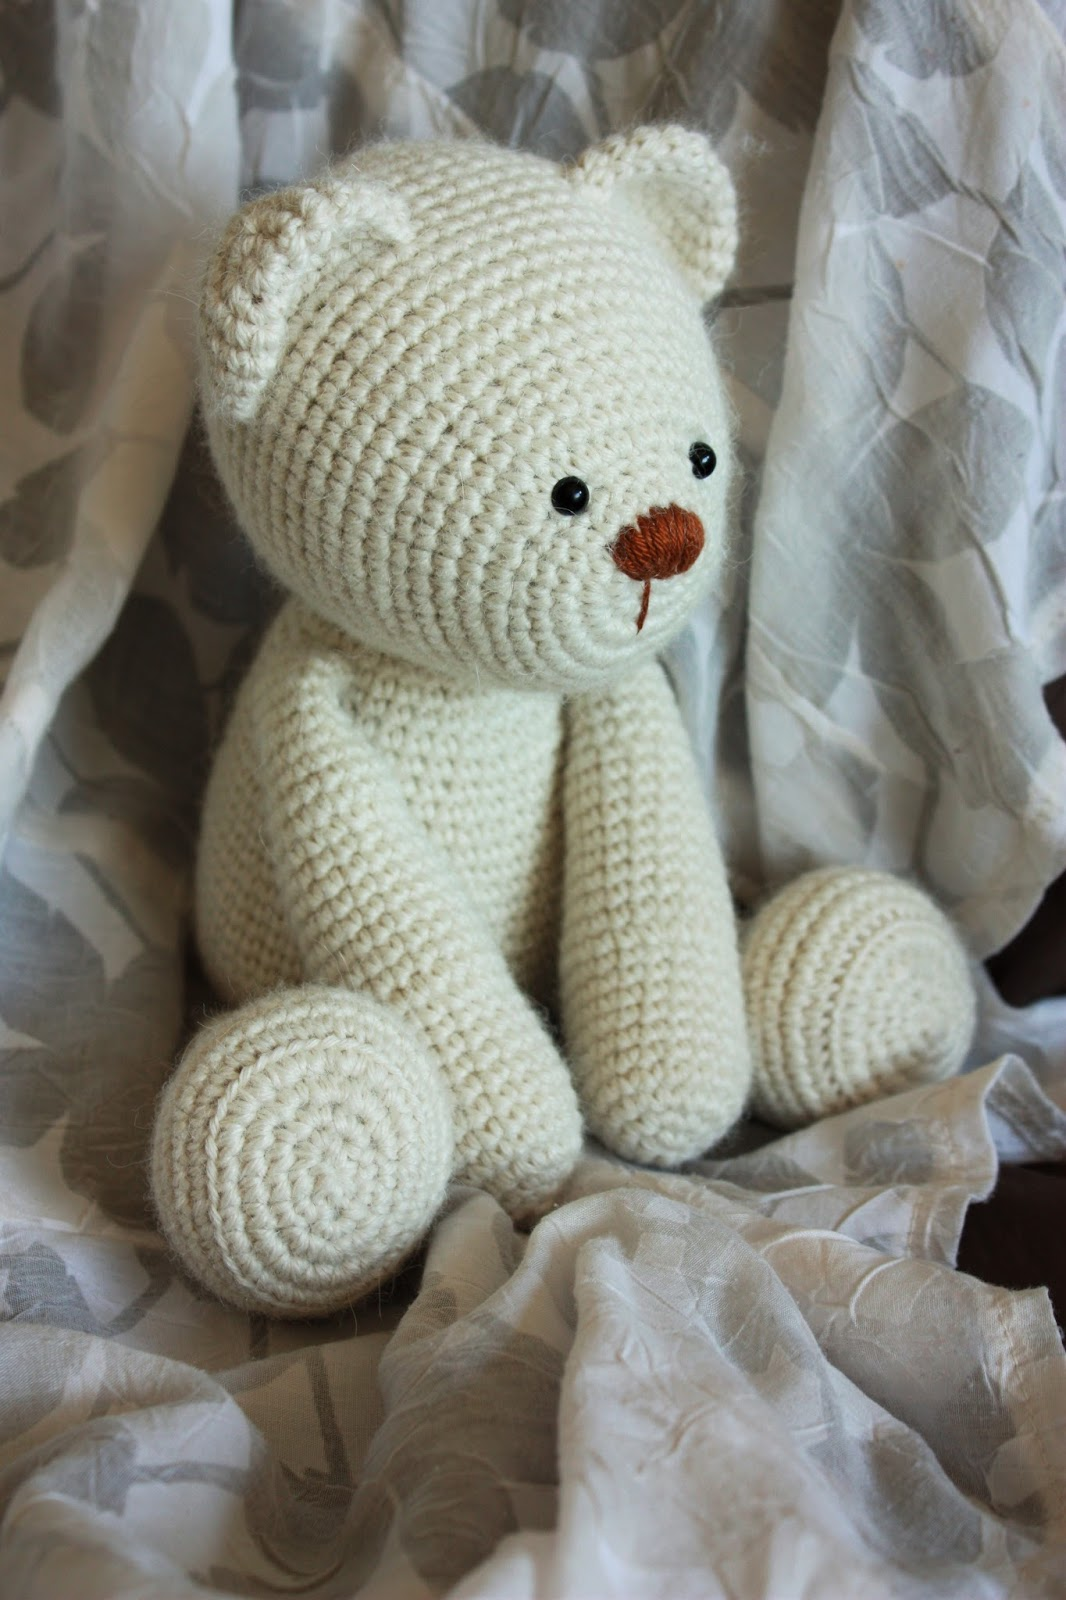 Happyamigurumi: Lucas the Teddy Bear Pattern: New Teddy Bear Friends